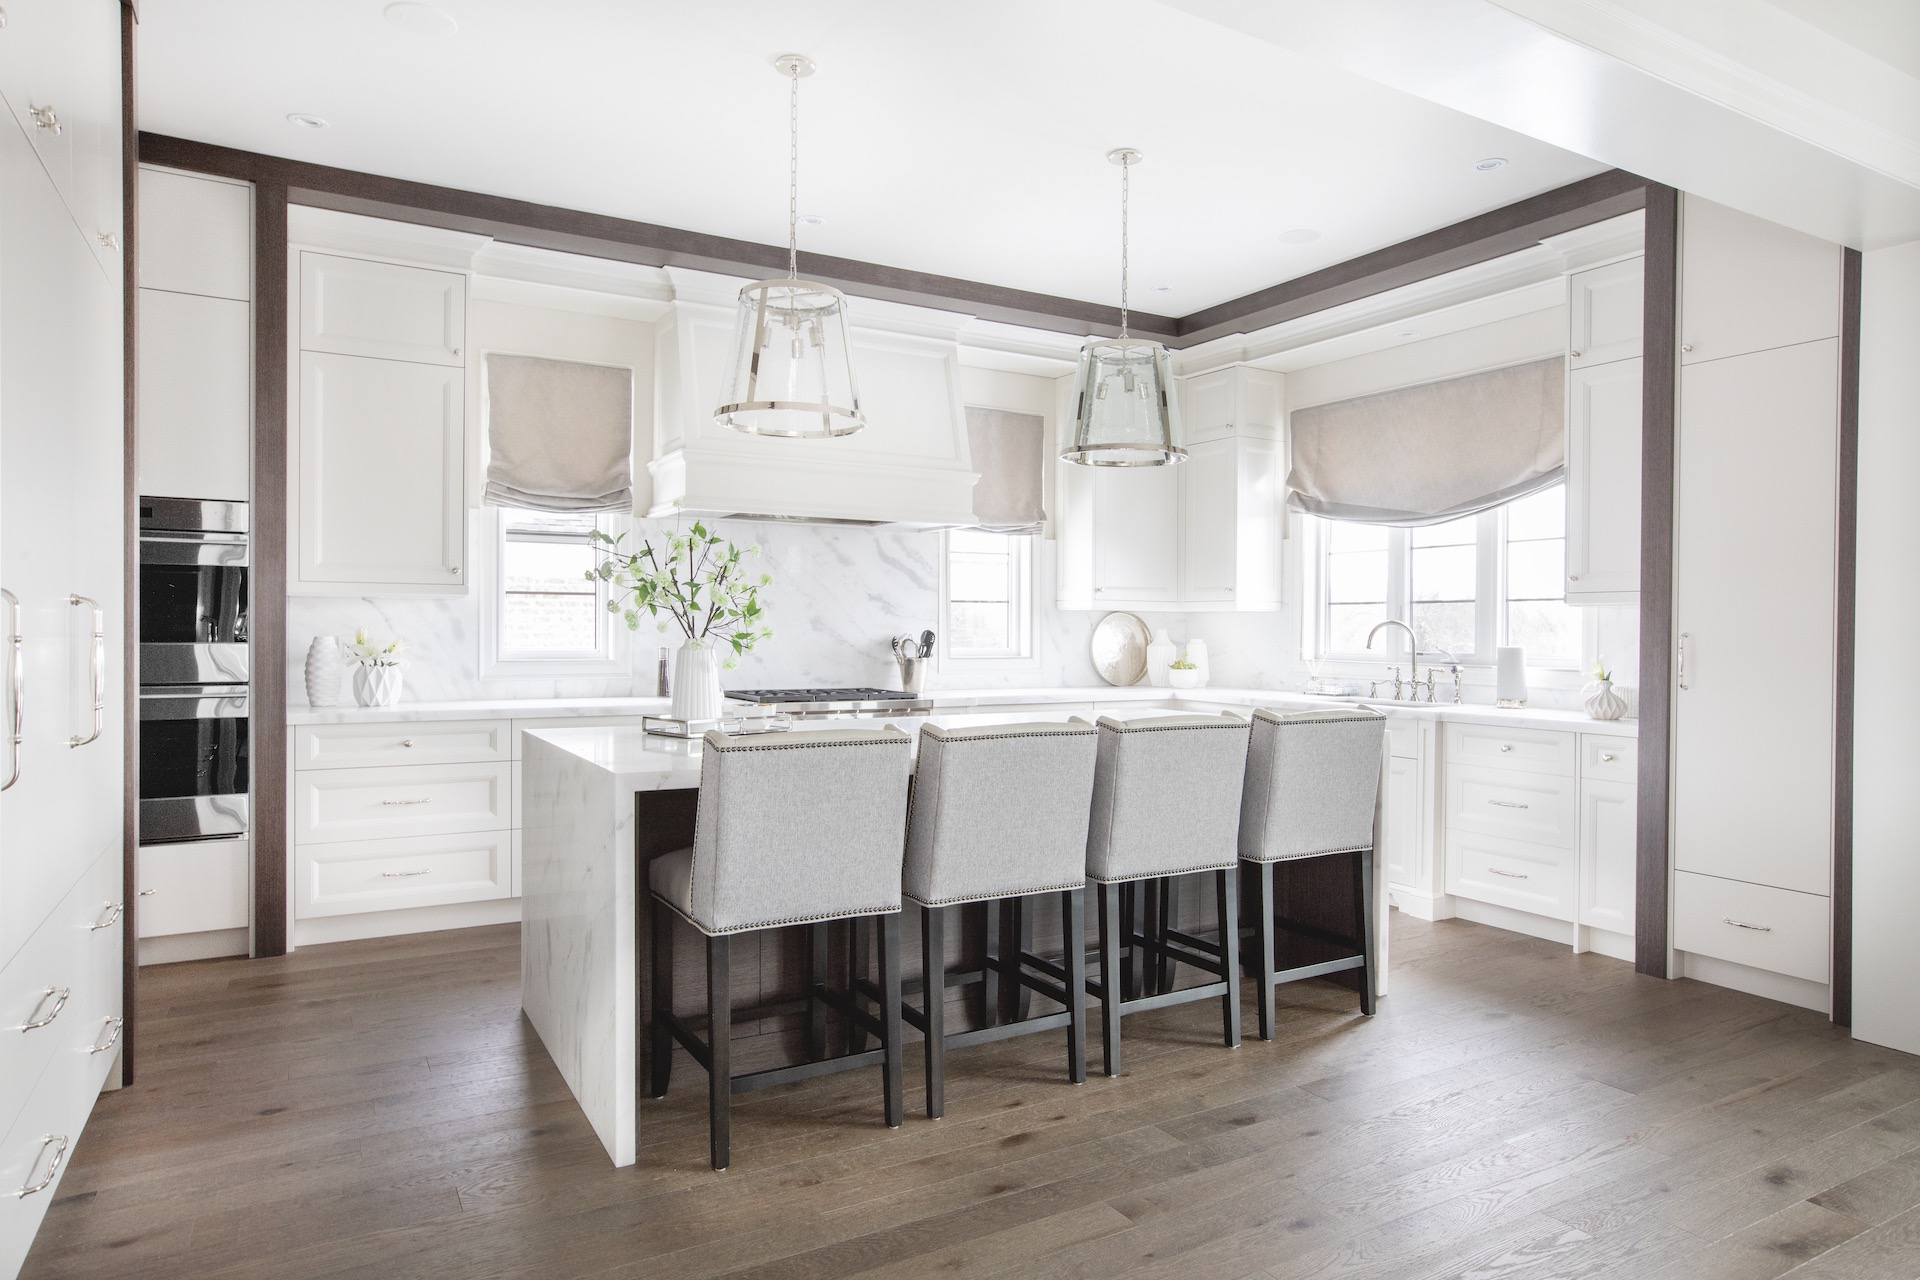 White kitchen with wood floors and bar stools